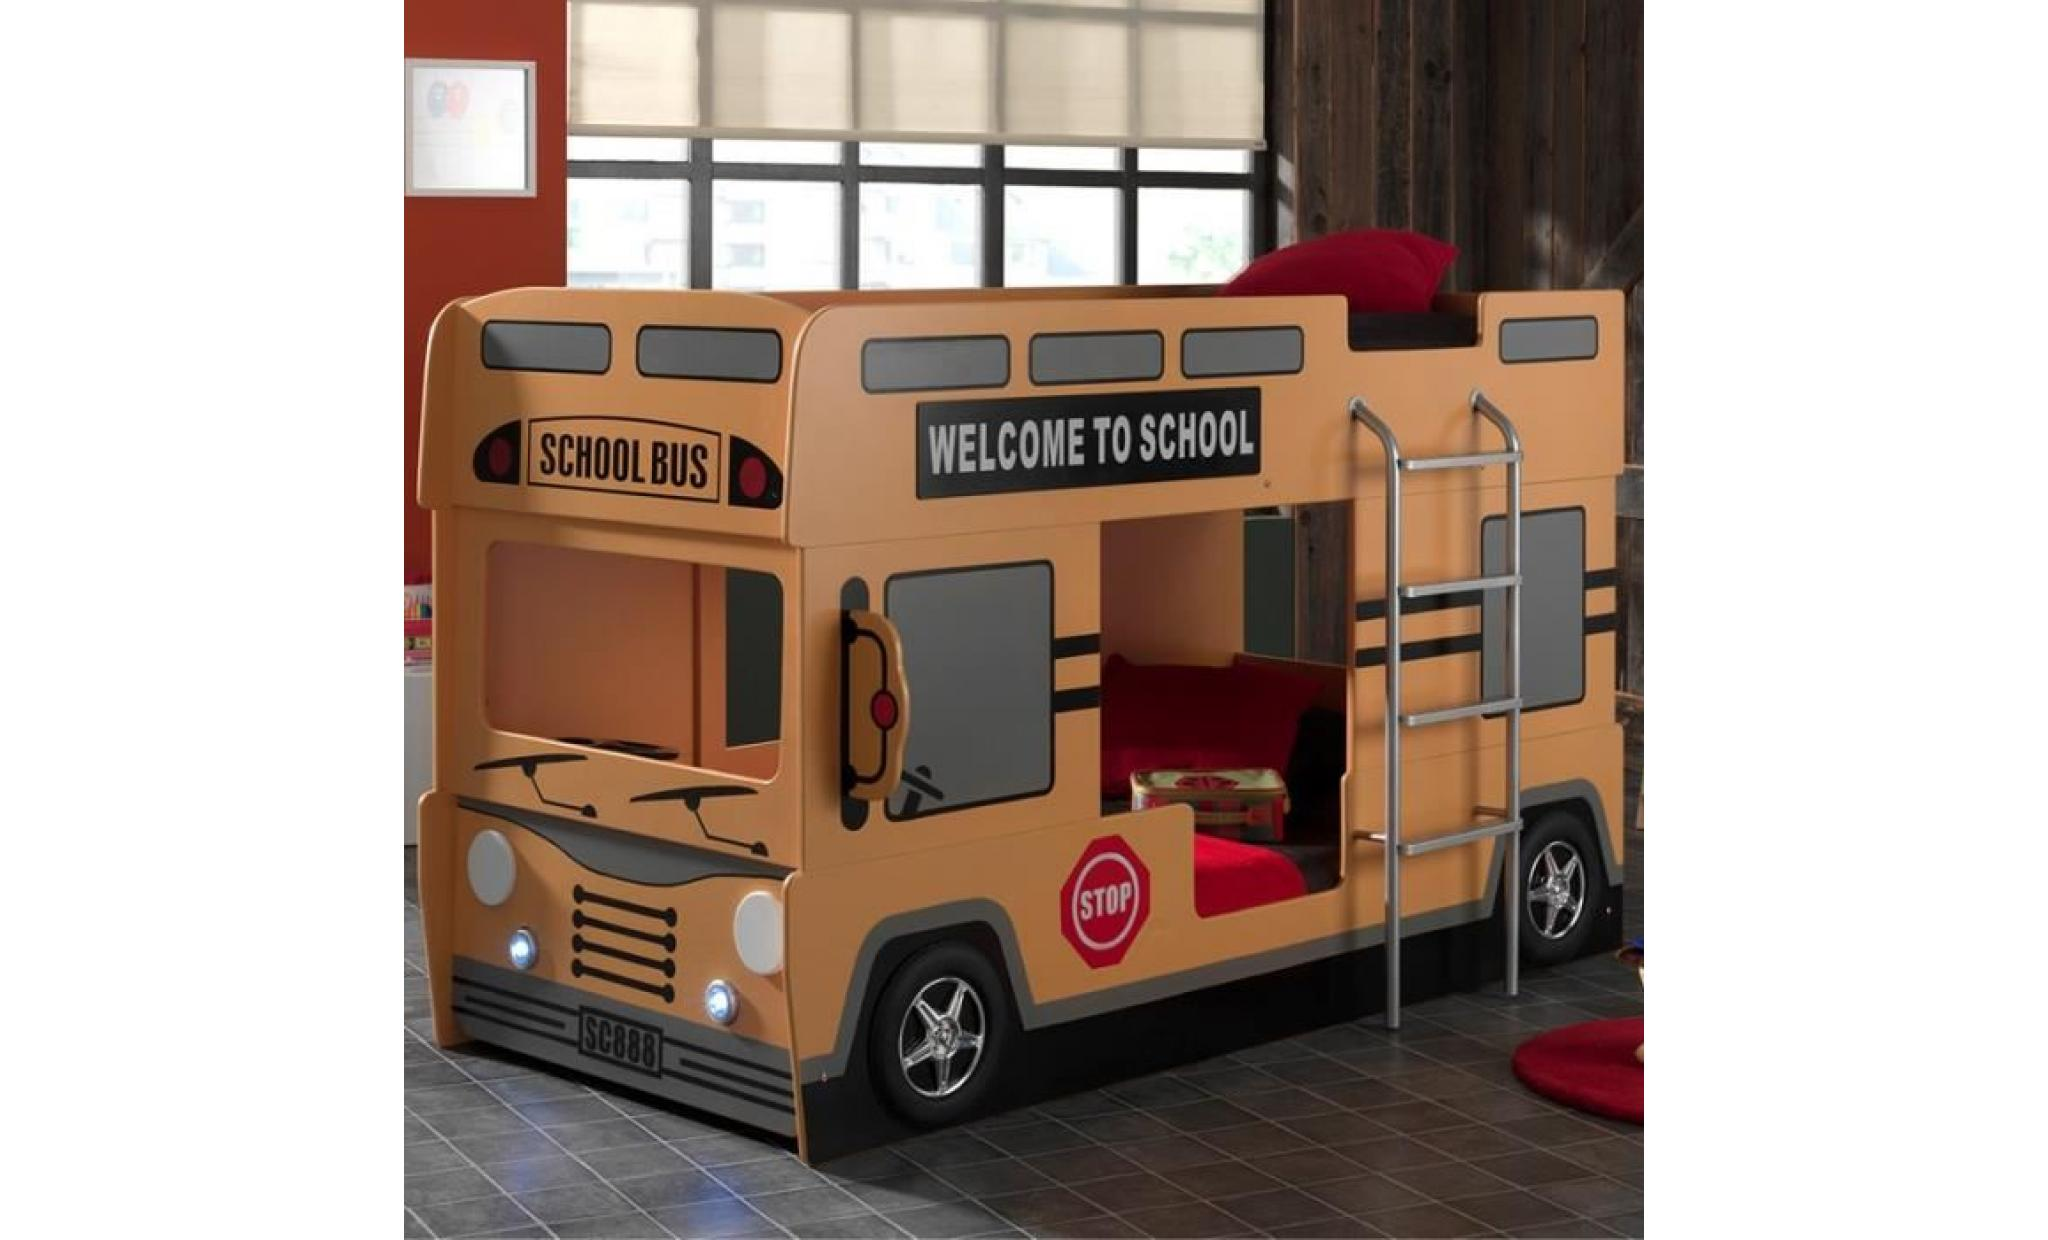 lit superpos bus school l 215 x l 100 x h 132 cm achat vente lit superpose pas cher. Black Bedroom Furniture Sets. Home Design Ideas